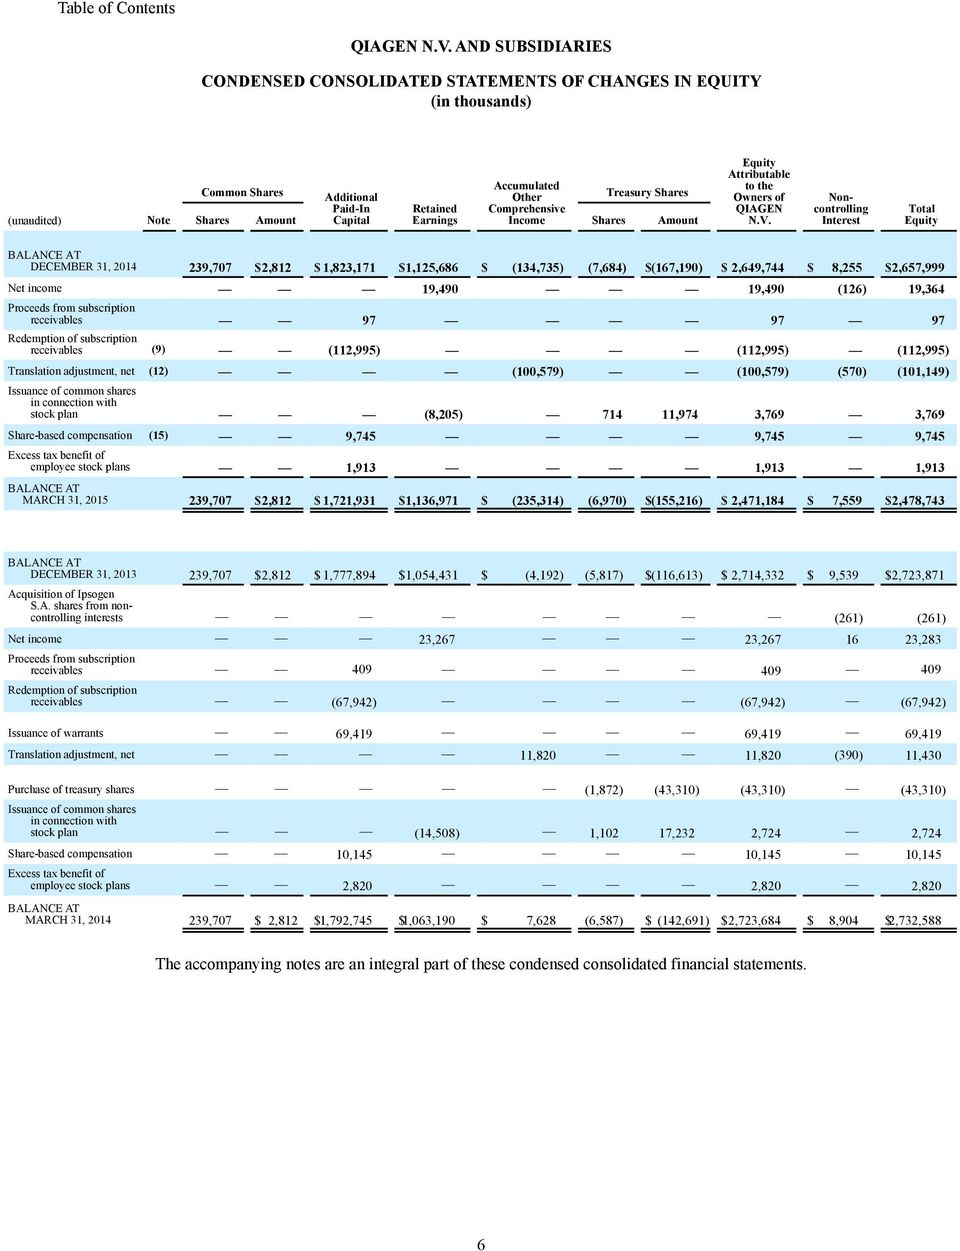 Retained Earnings Comprehensive Income Shares Amount Equity Attributable to the Owners of  Noncontrolling Interest Total Equity BALANCE AT DECEMBER 31, 2014 239,707 $2,812 $ 1,823,171 $1,125,686 $